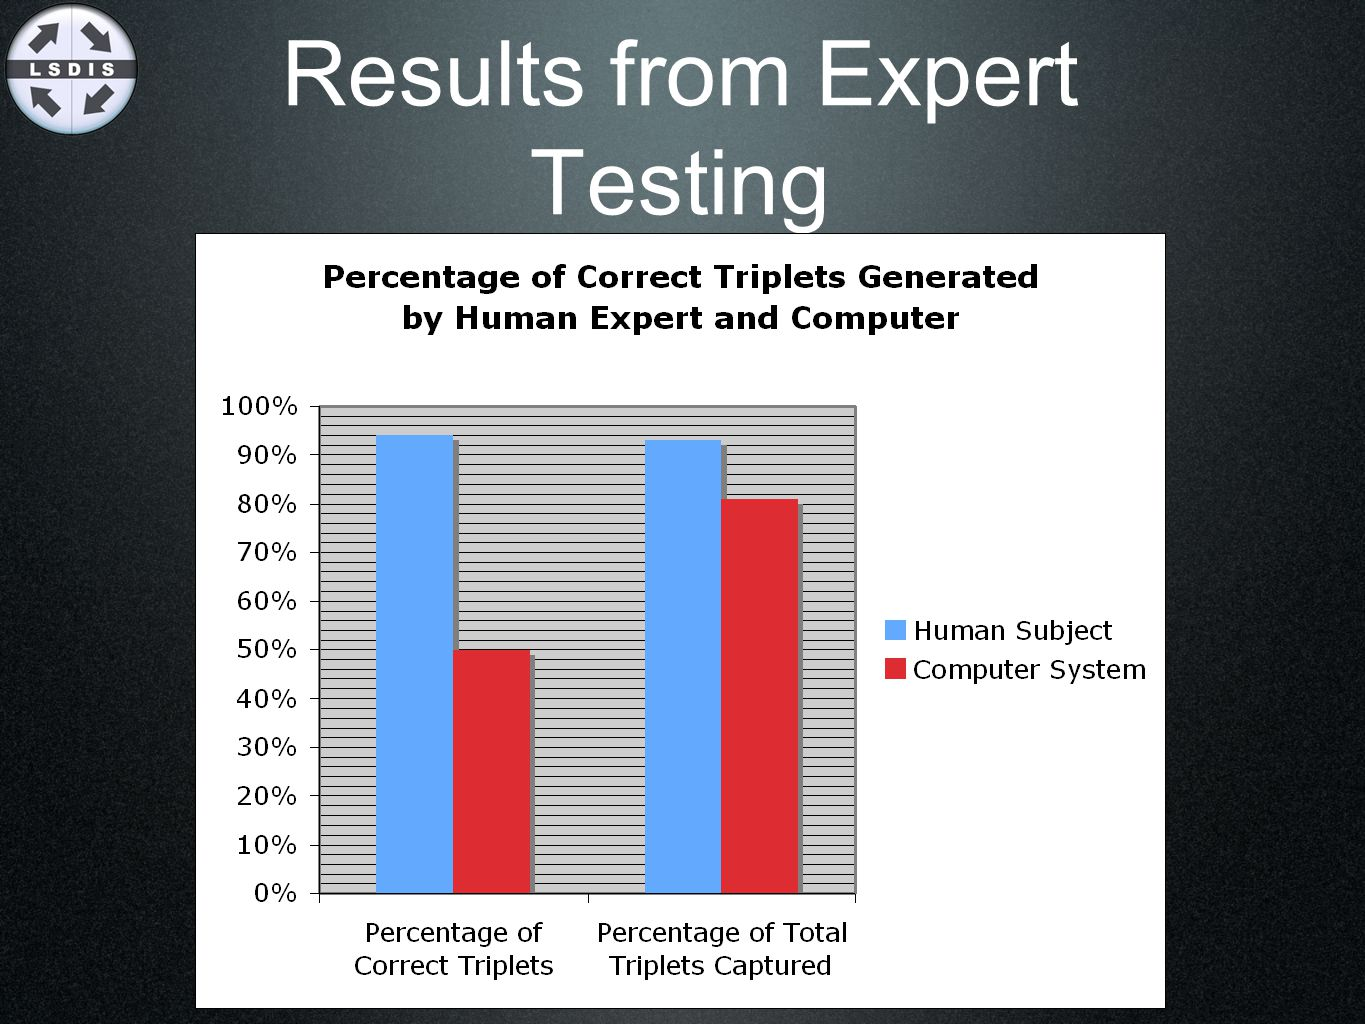 Results from Expert Testing